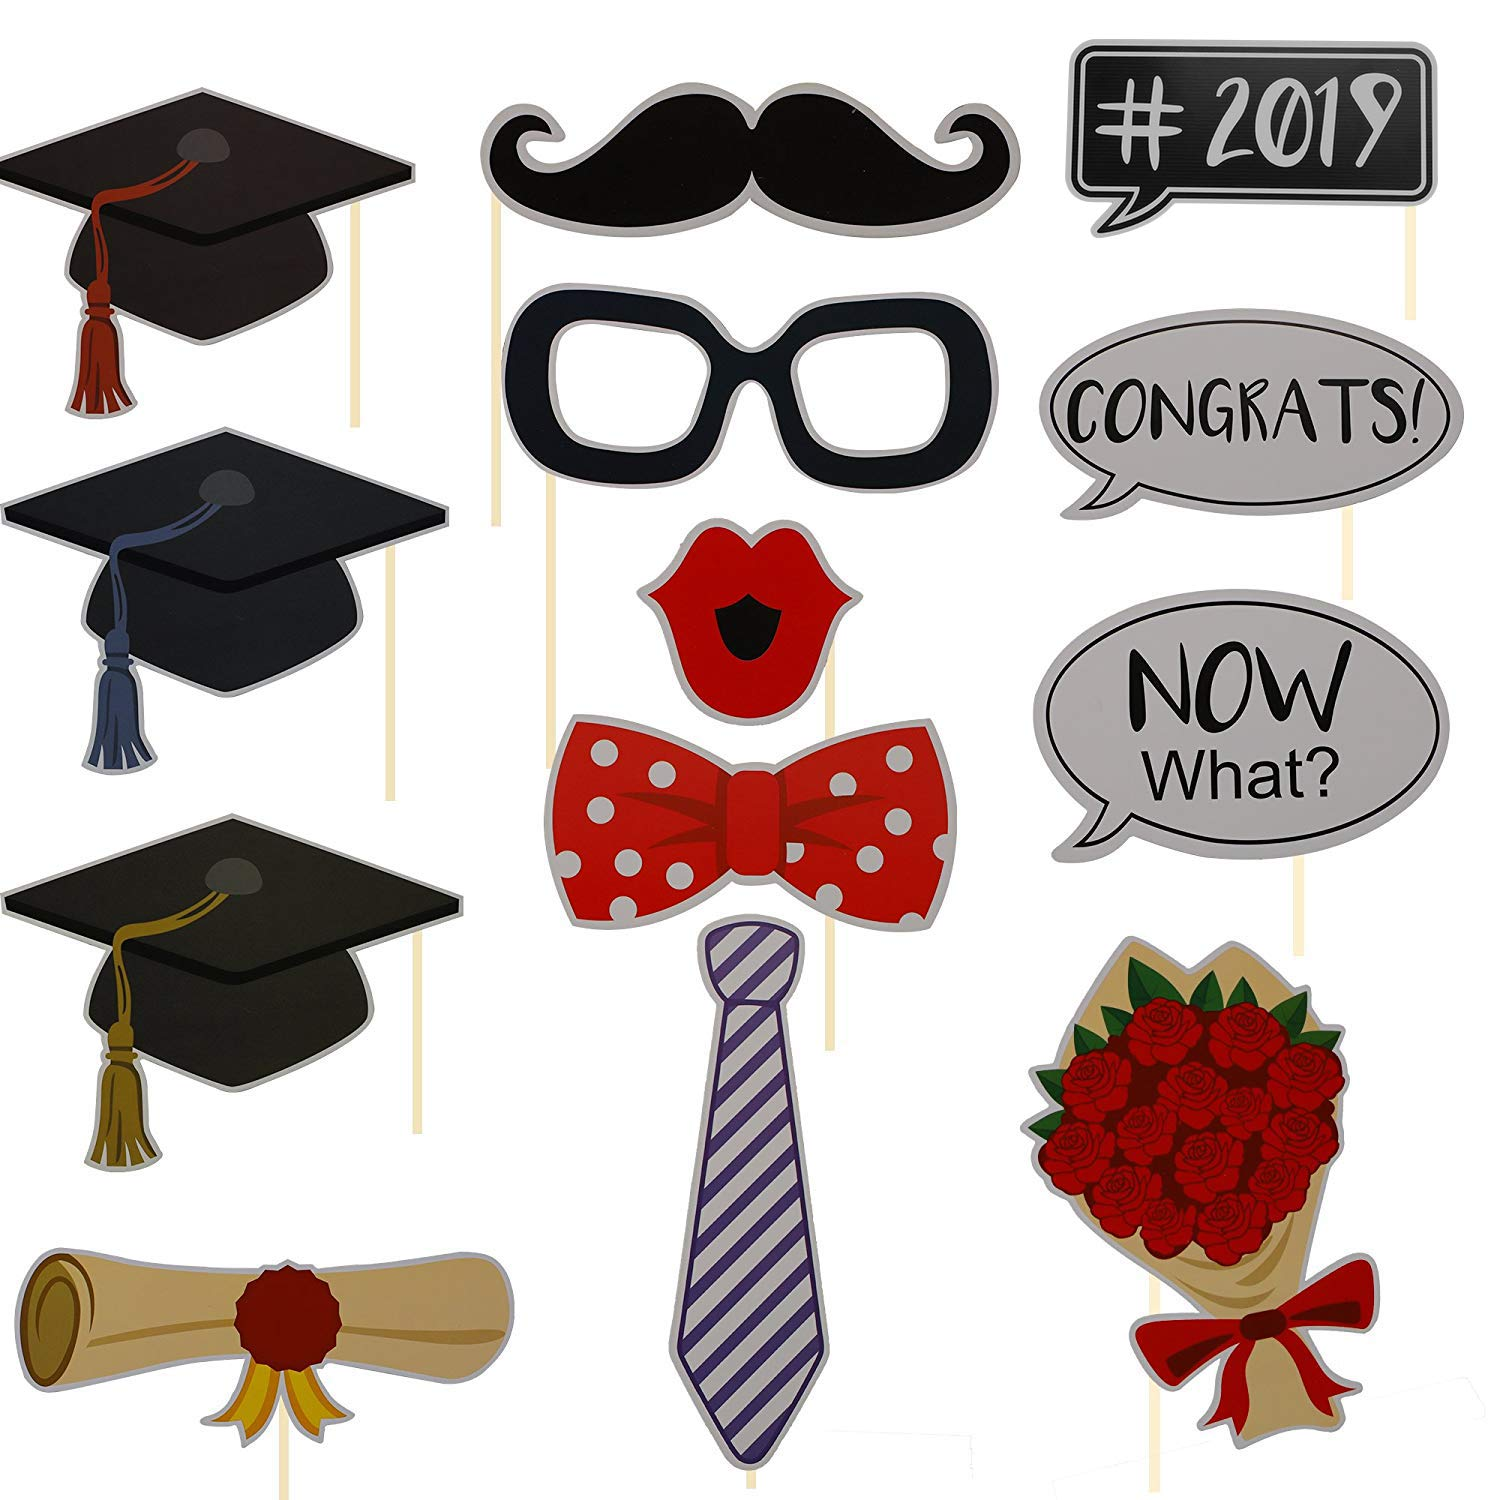 VIPITH Set of 30 Pieces Style Graduation Photo Booth Props Kit DIY Photo Posing Prop Party Supplies Mortarboards Slogan Glasses Moustache Red Lips Bow Ties Rose wine On Sticks for Graduation Party Dec